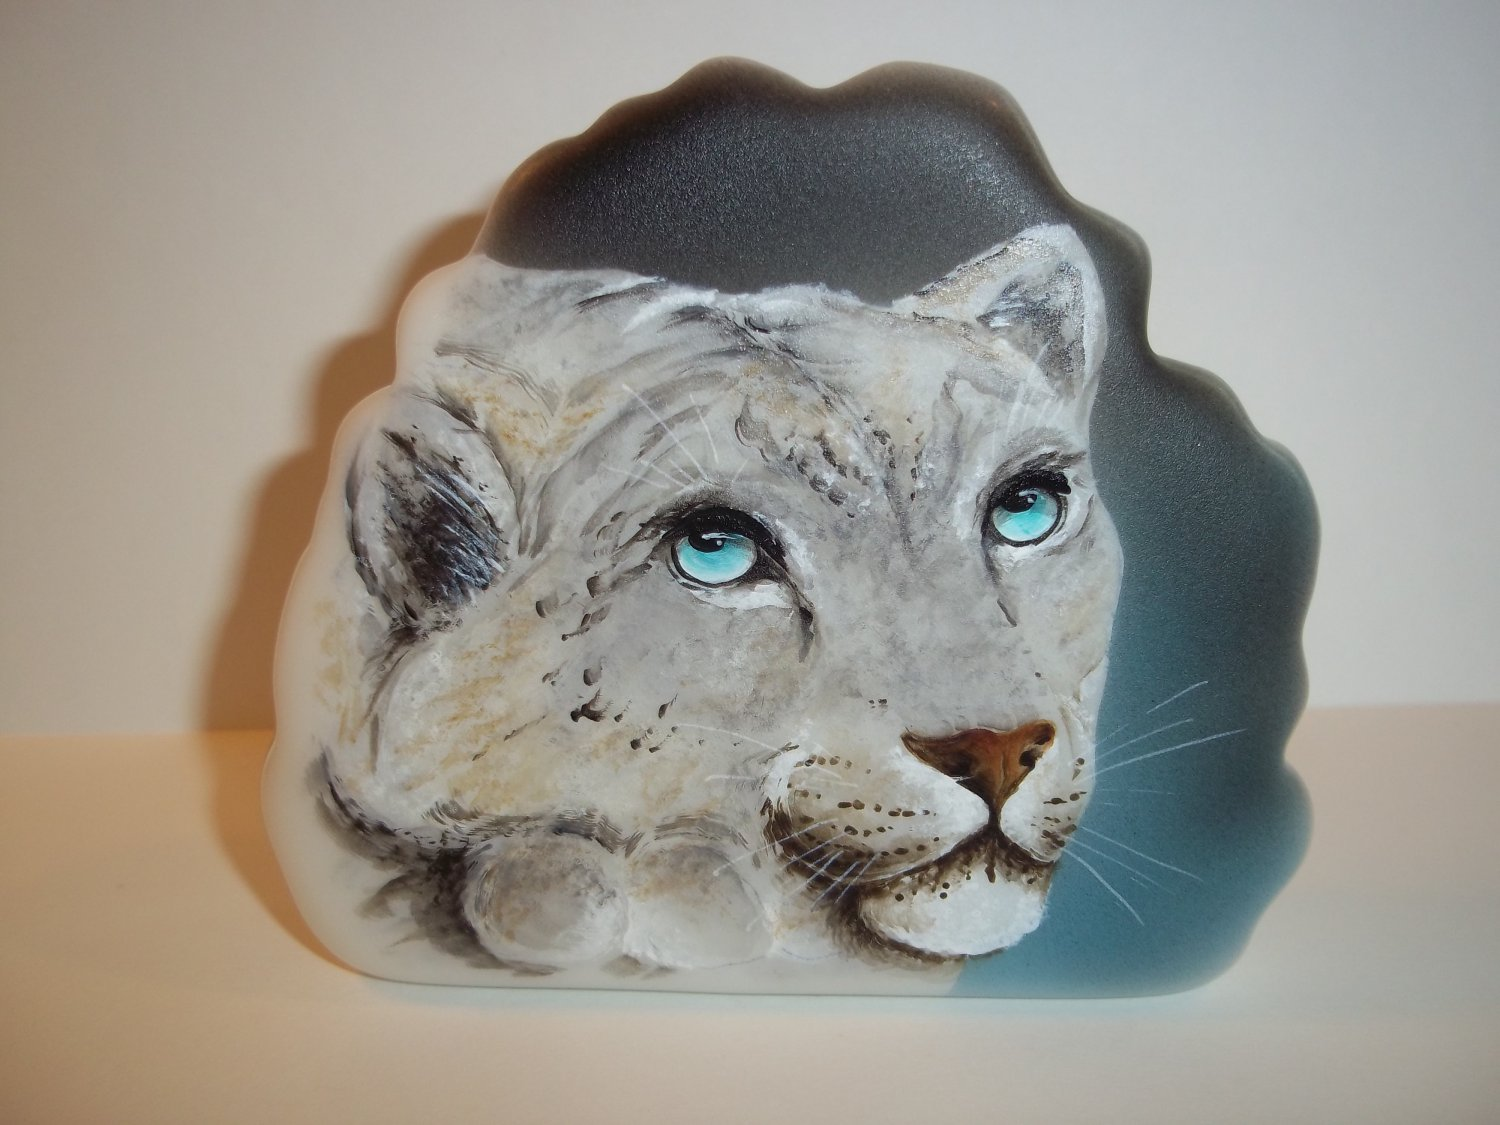 Fenton Glass Wild Cat Snow Leopard Paperweight Figurine Ltd Ed M Kibbe #3/11